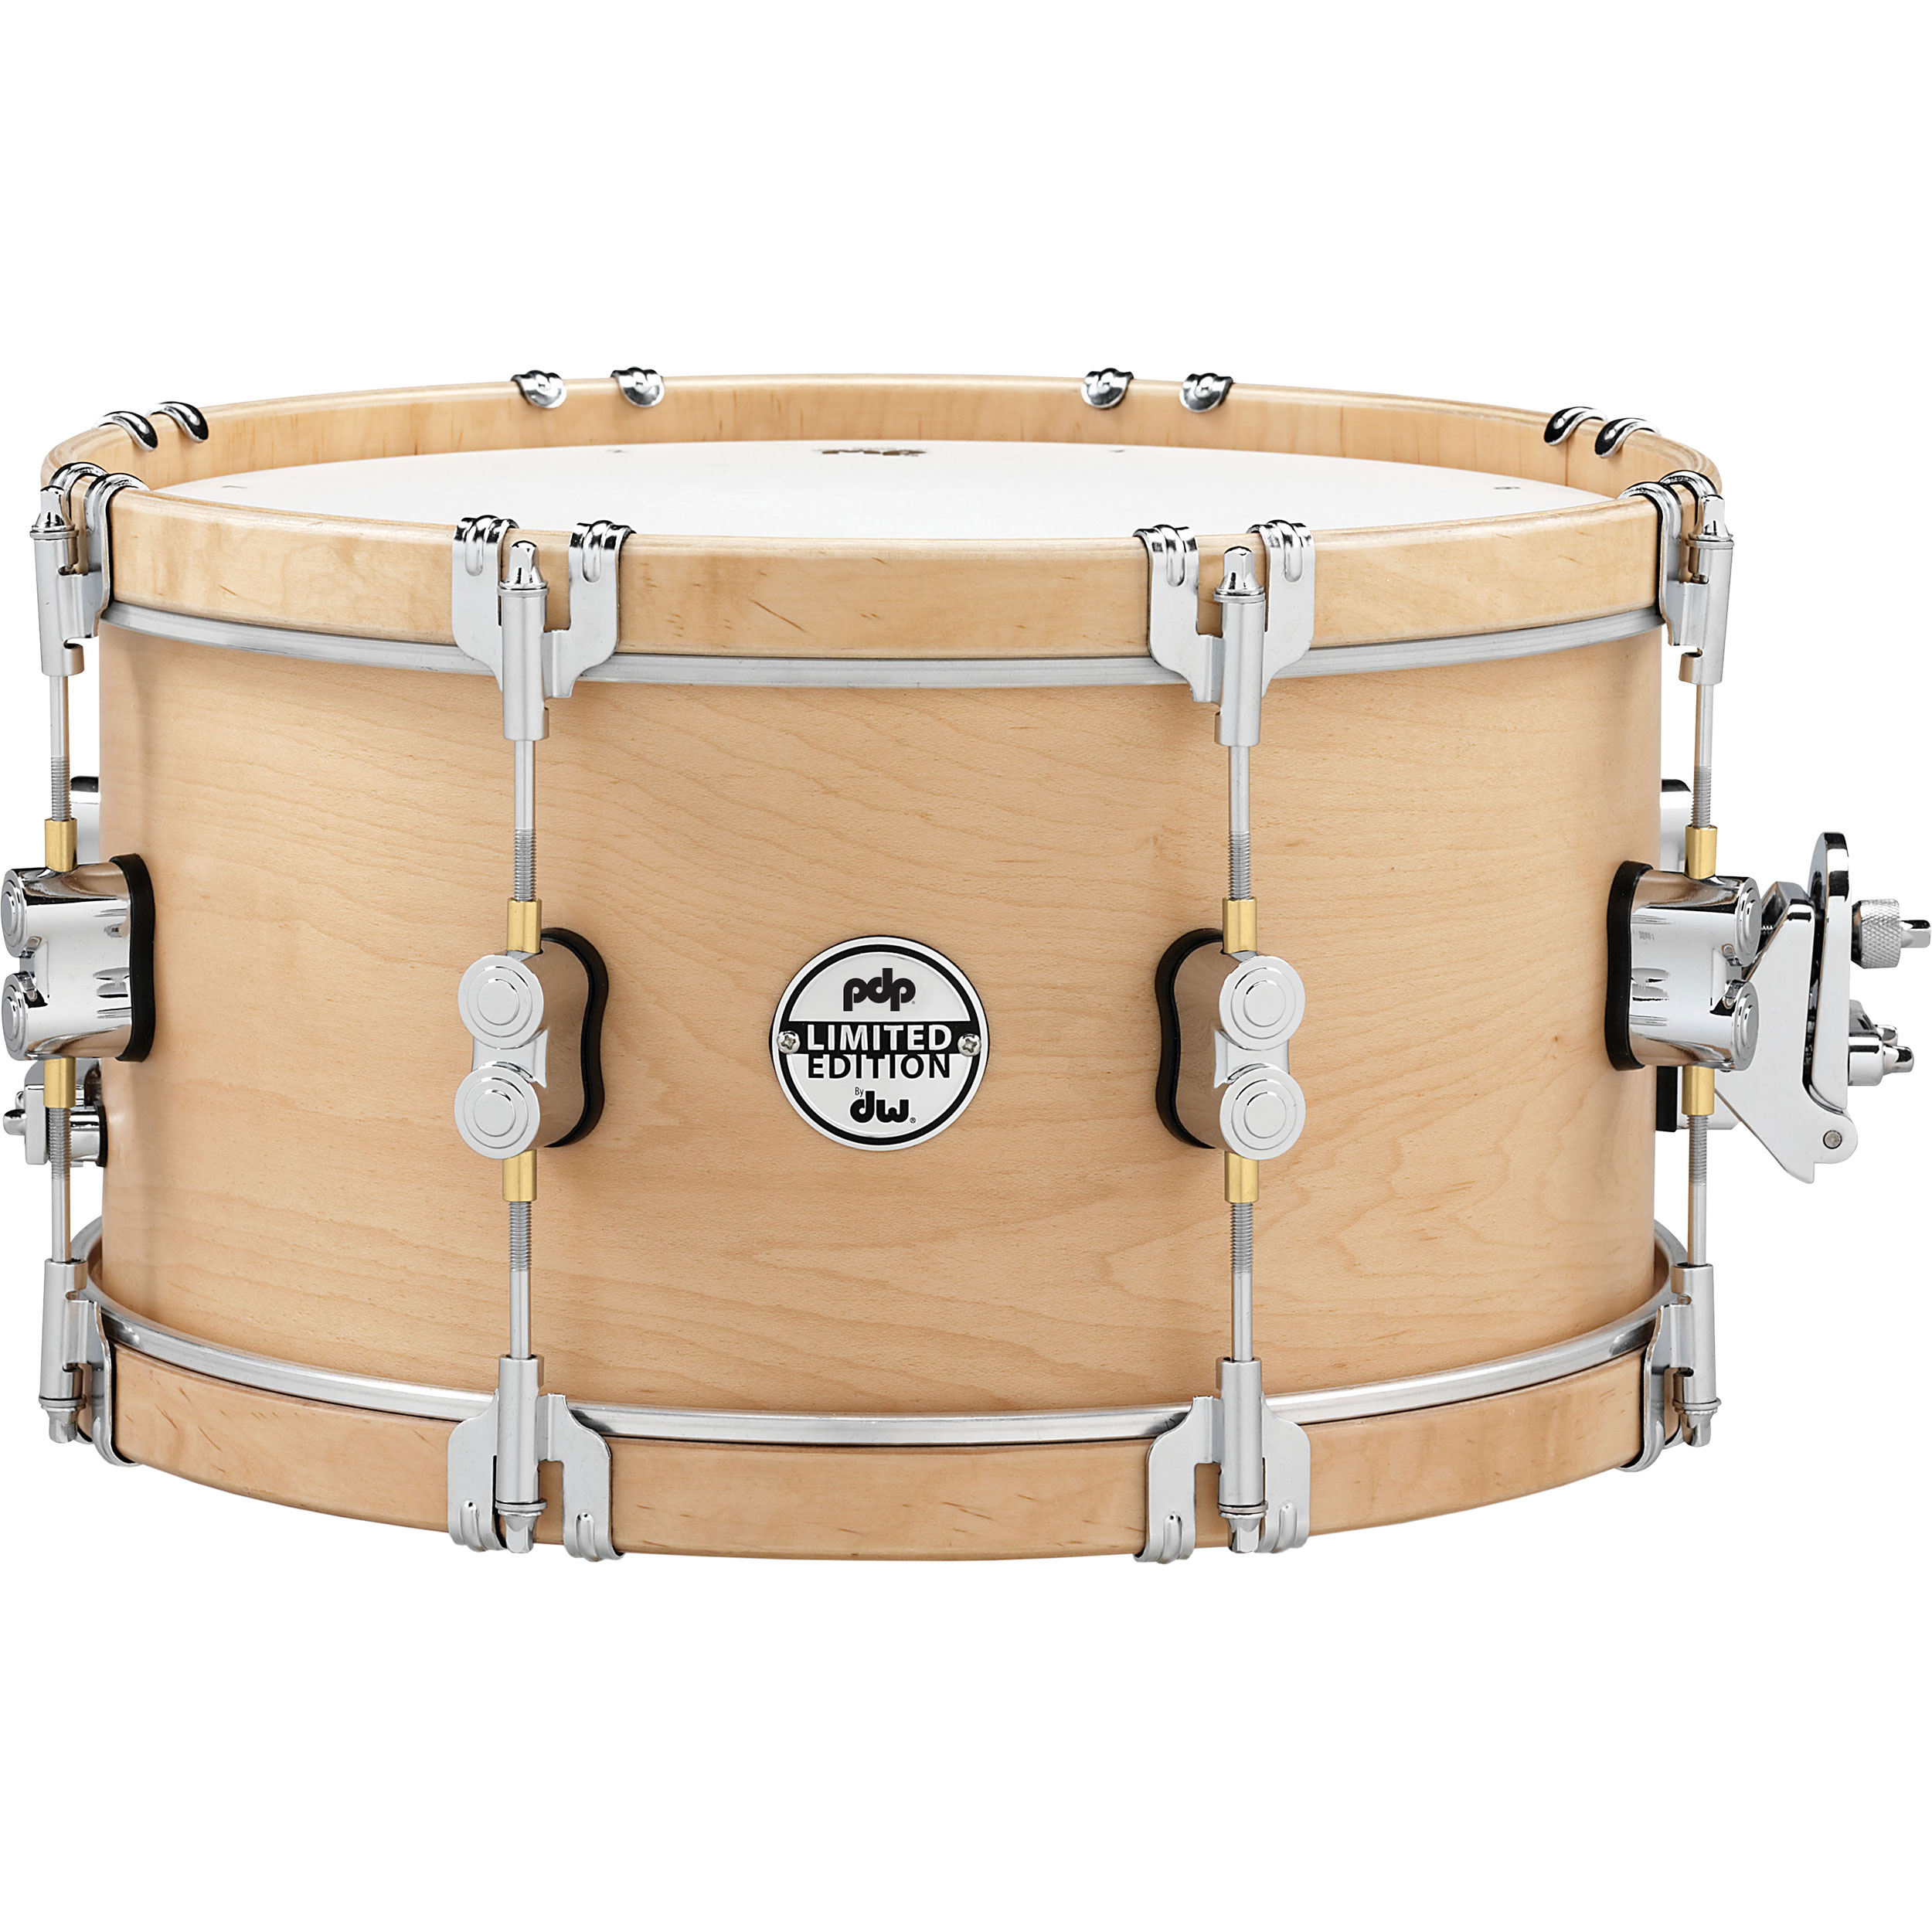 """PDP 7"""" x 14"""" Limited Edition Classic Wood Hoop Snare Drum"""